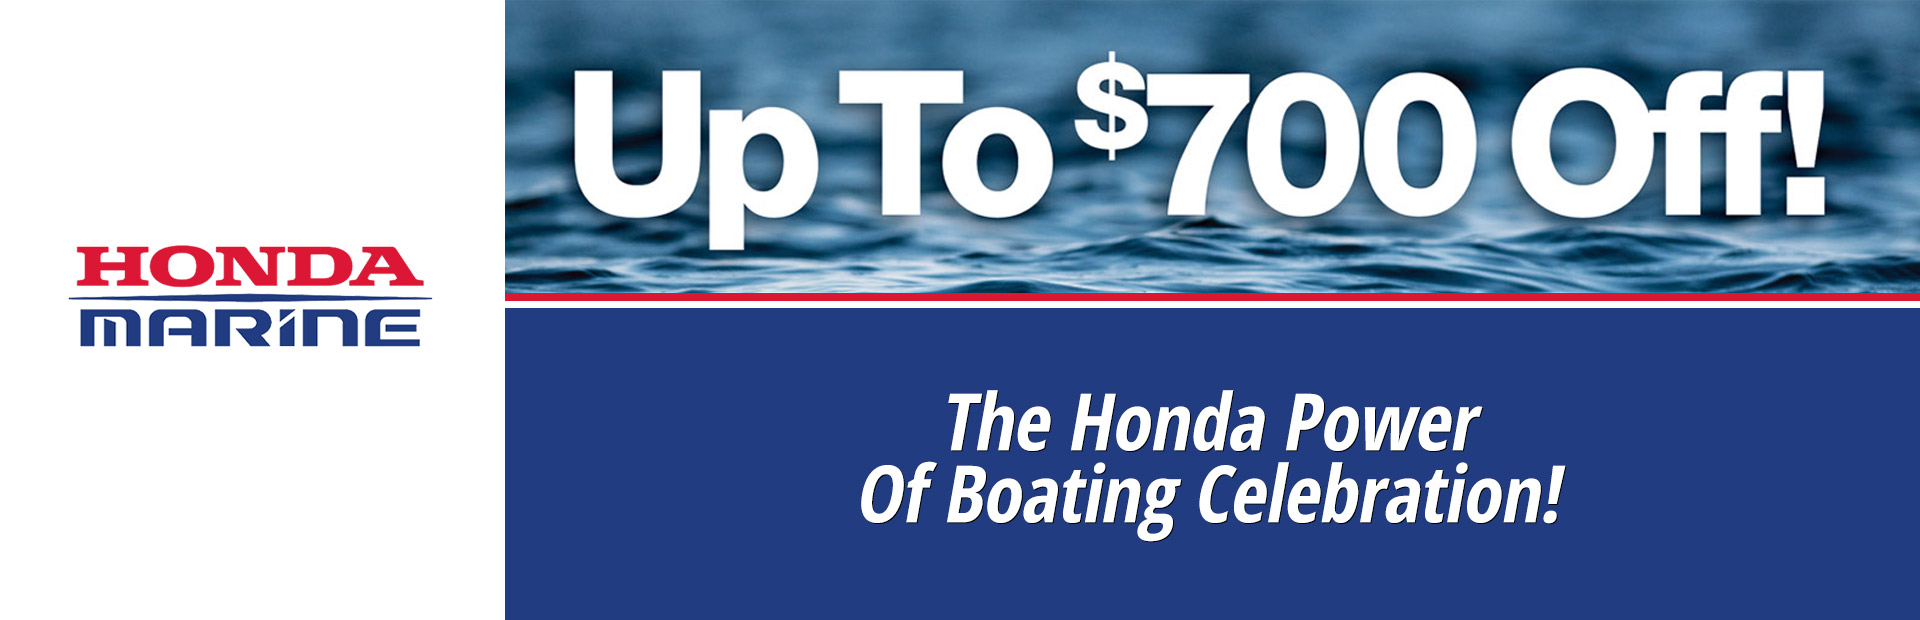 The Honda Power Of Boating Celebration!